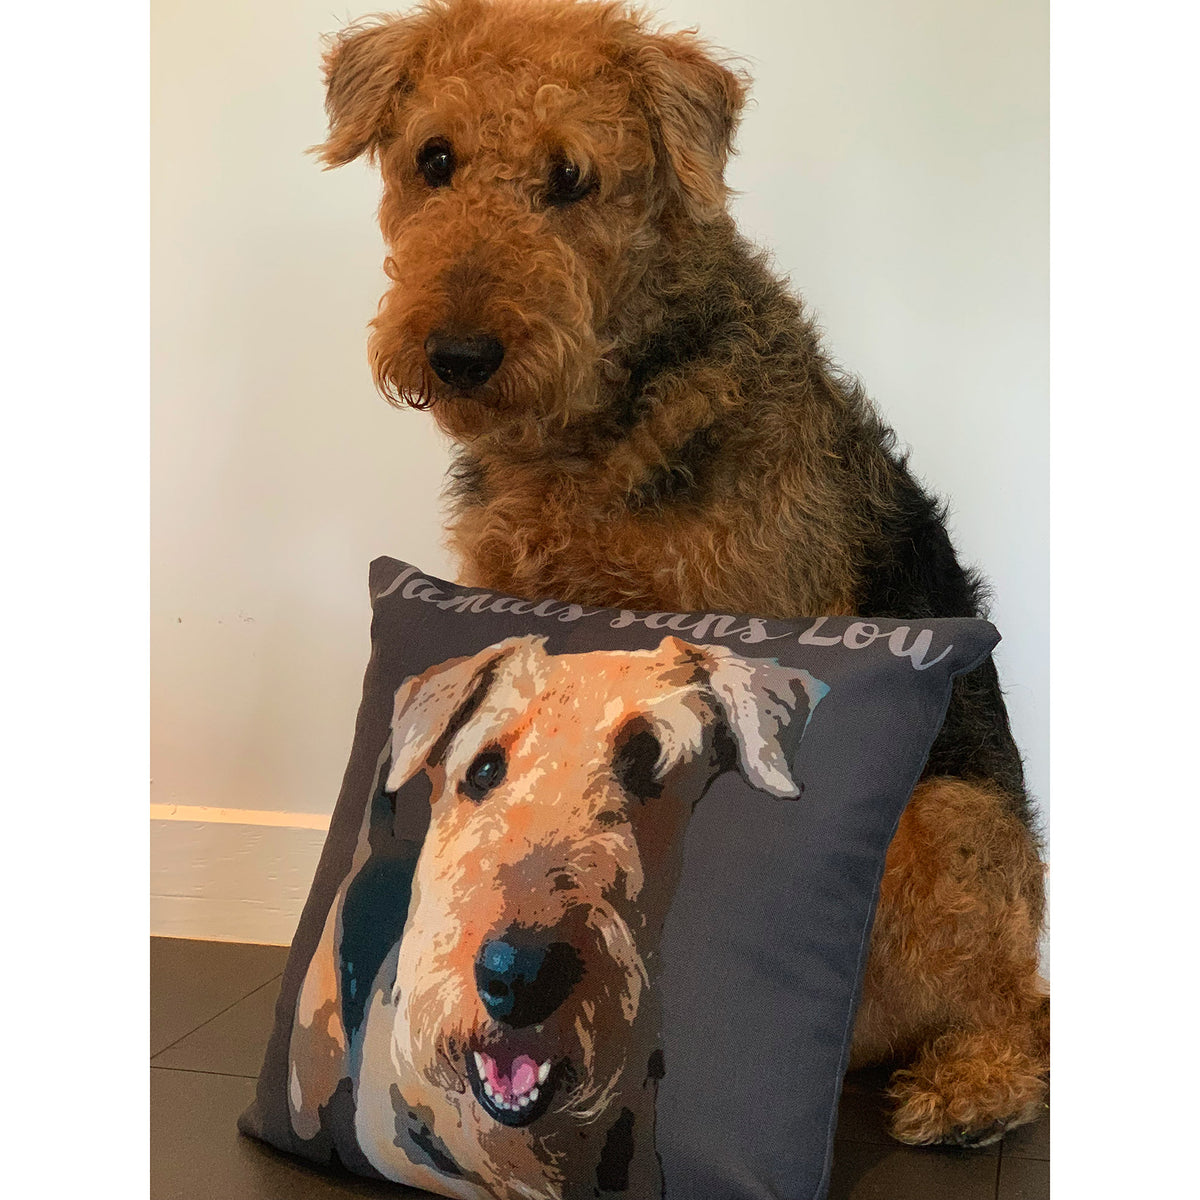 Airedale terrier with custom dog art on pillow